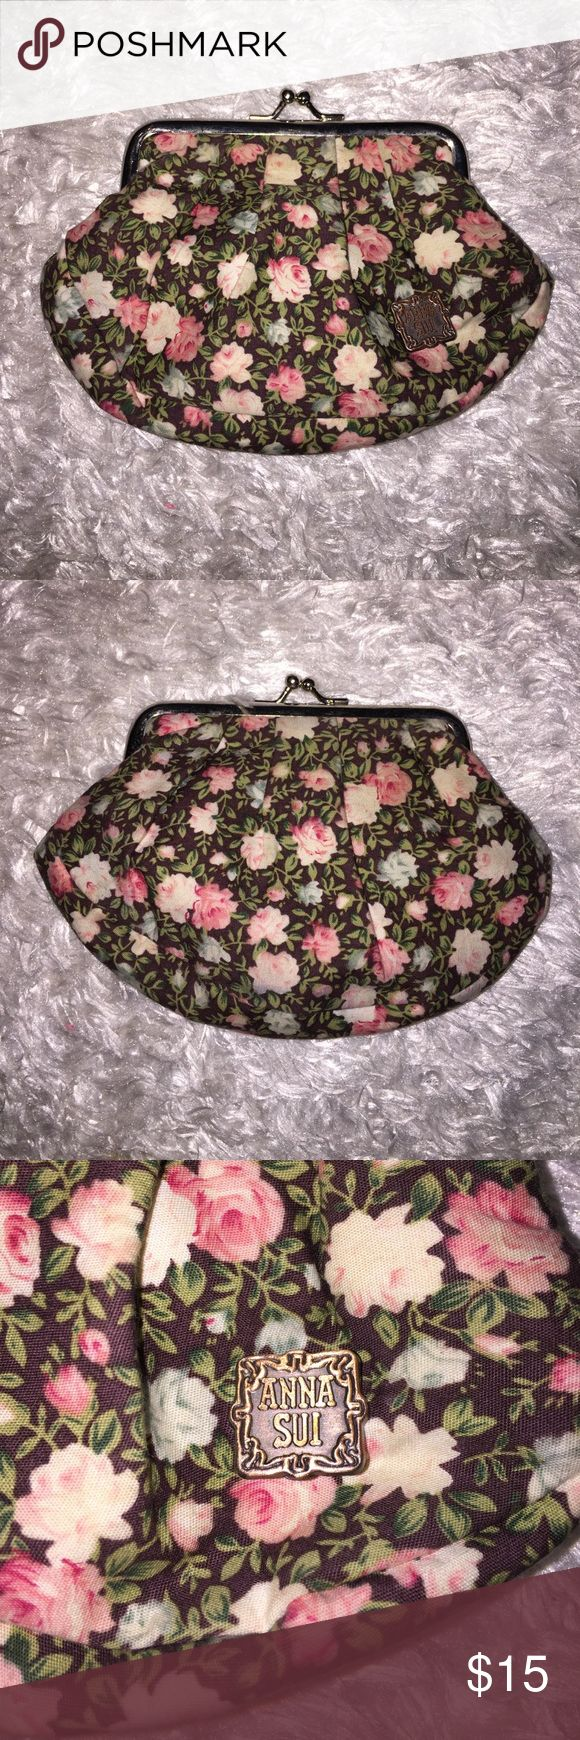 """Anna Sui Coin Purse Excellent condition, no flaws. 6"""" by 4"""".  Feel free to ask any questions! No trades sorry, & offers thru the offer button only!.... Anna Sui Bags Wallets"""